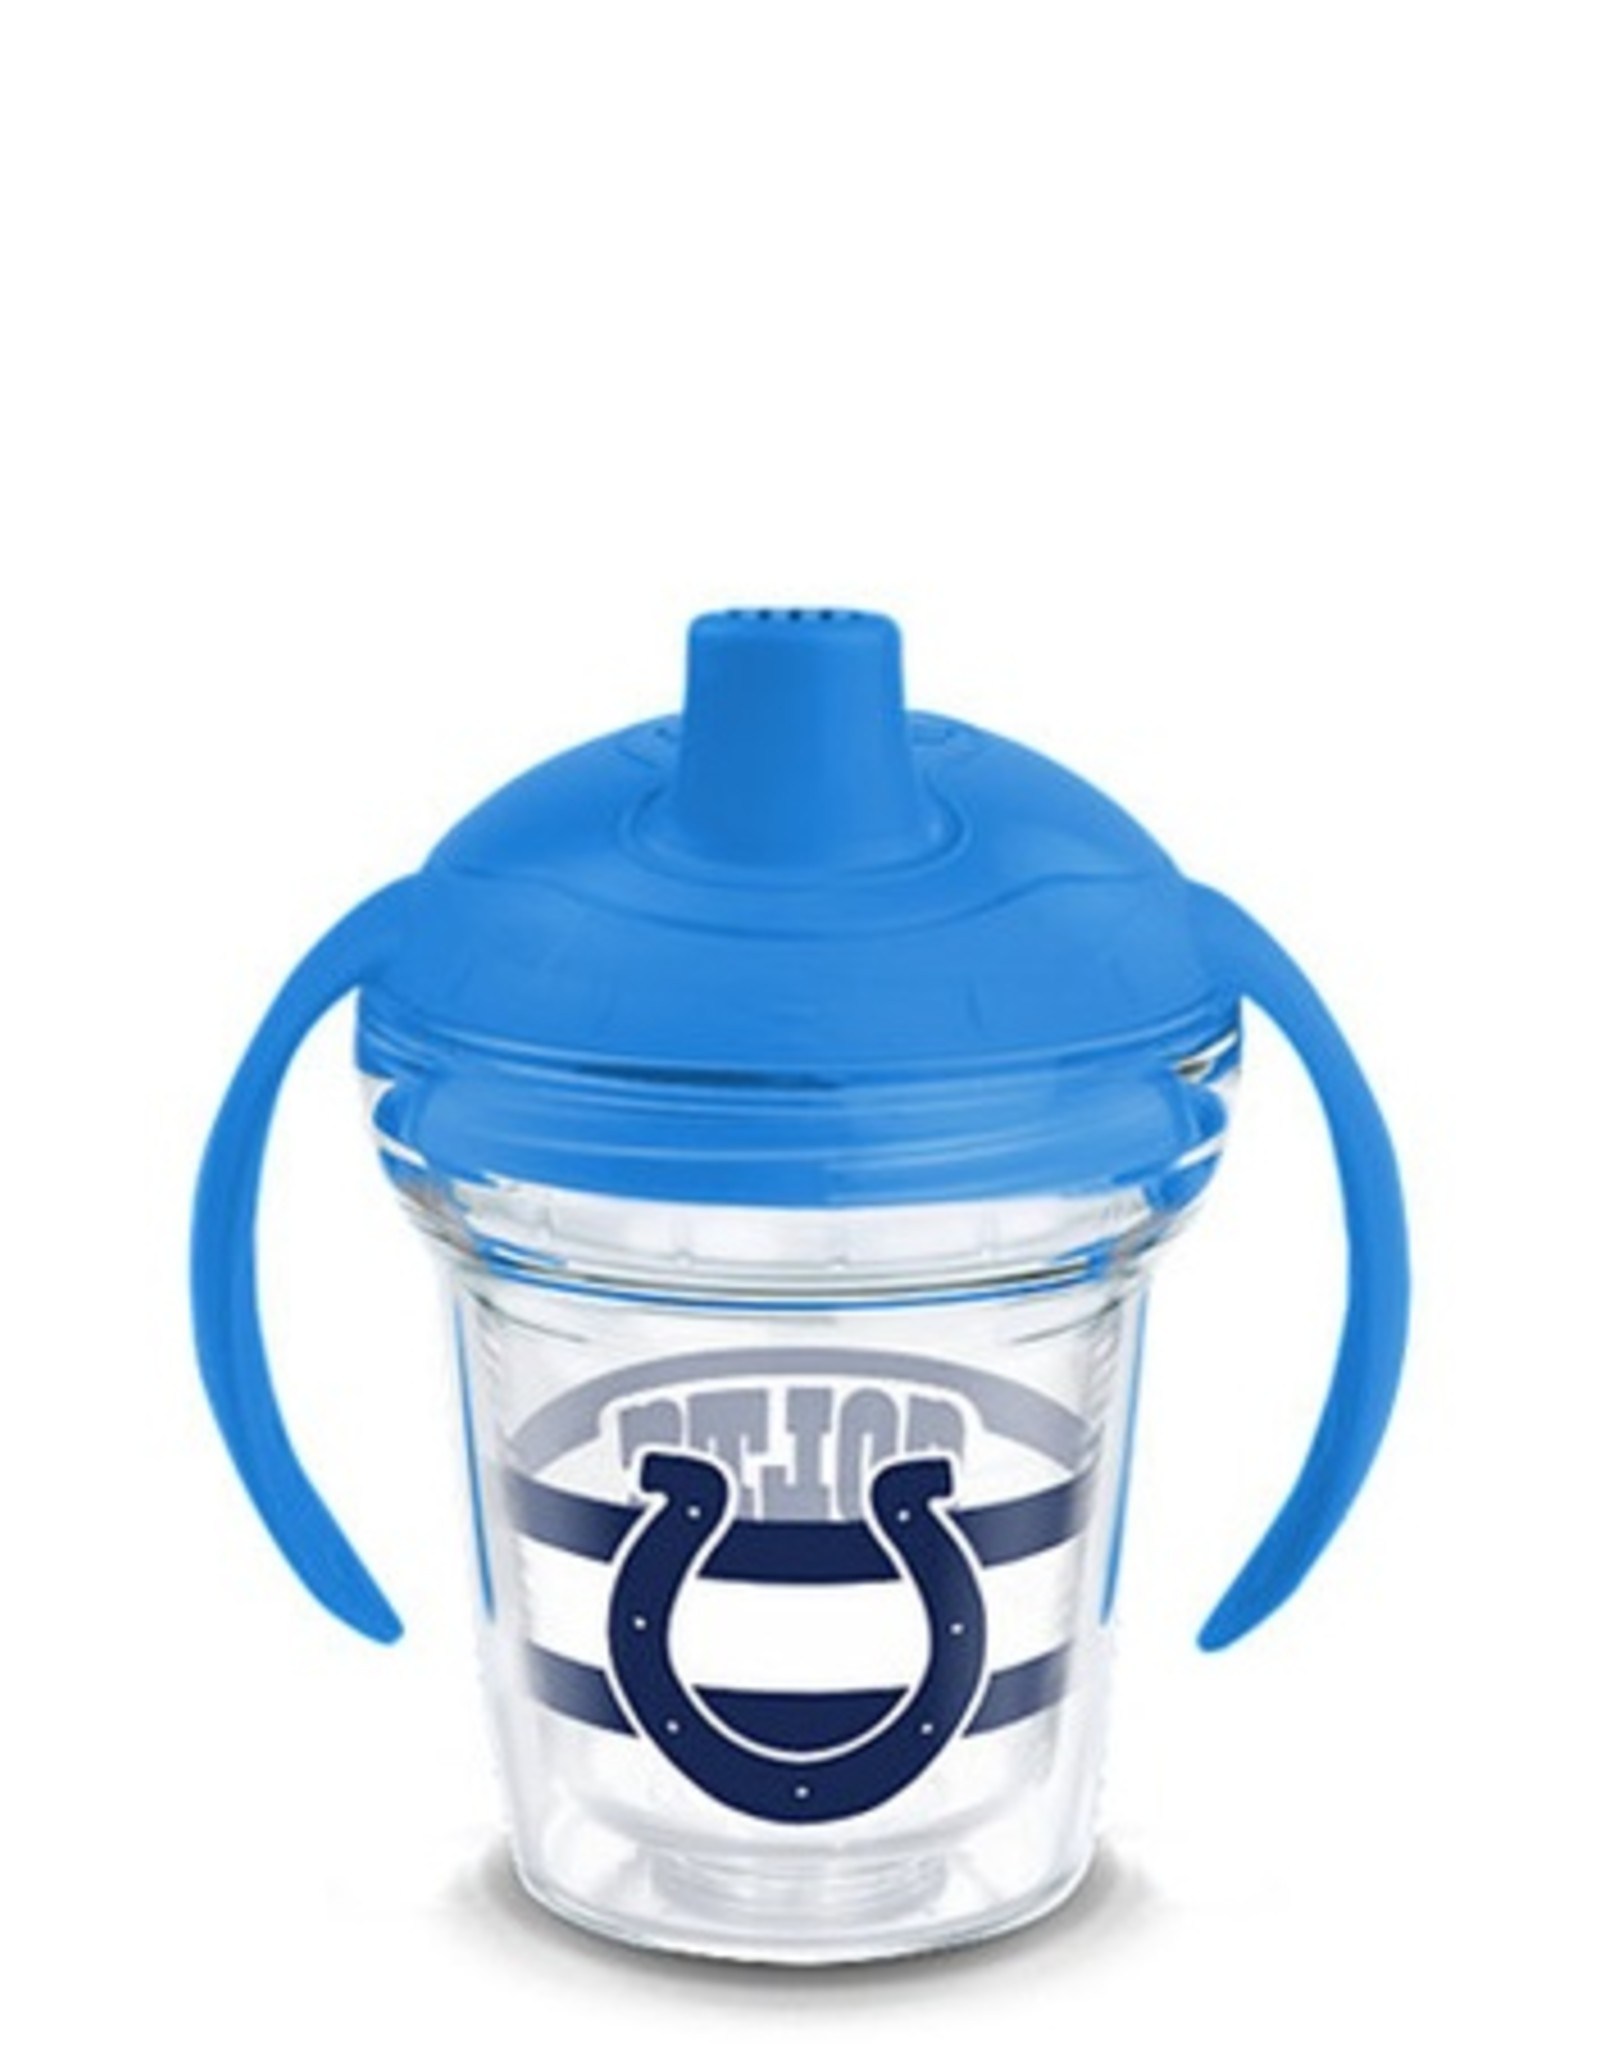 TERVIS Indianapolis Colts Tervis Sippy Cup with Team Color Lid